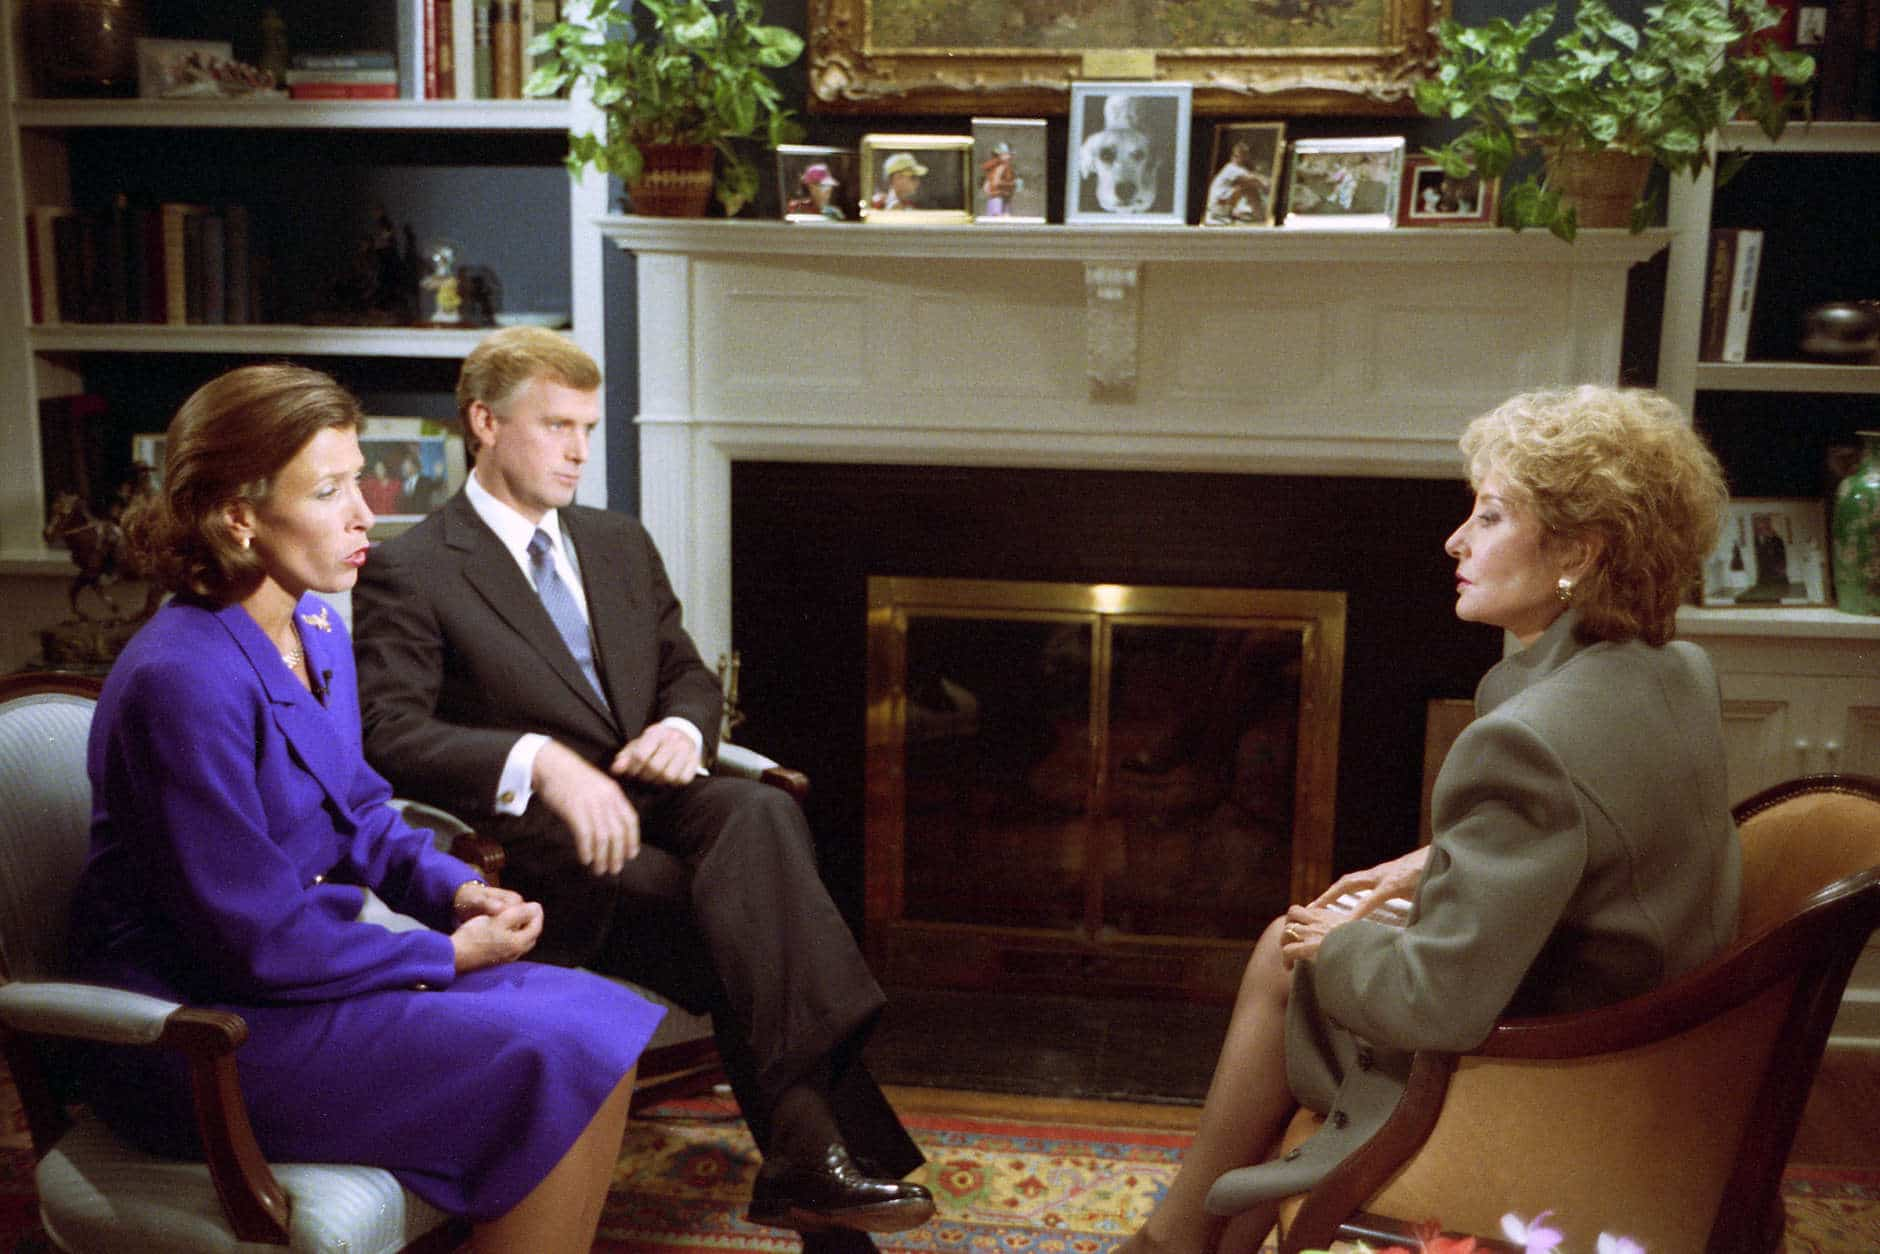 V09718-10A  Vice President and Mrs. Quayle participate in an interview with Barbara Walters at the Vice President's Mansion. 26 September 1991 Photo Credit:  George Bush Presidential Library and Museum